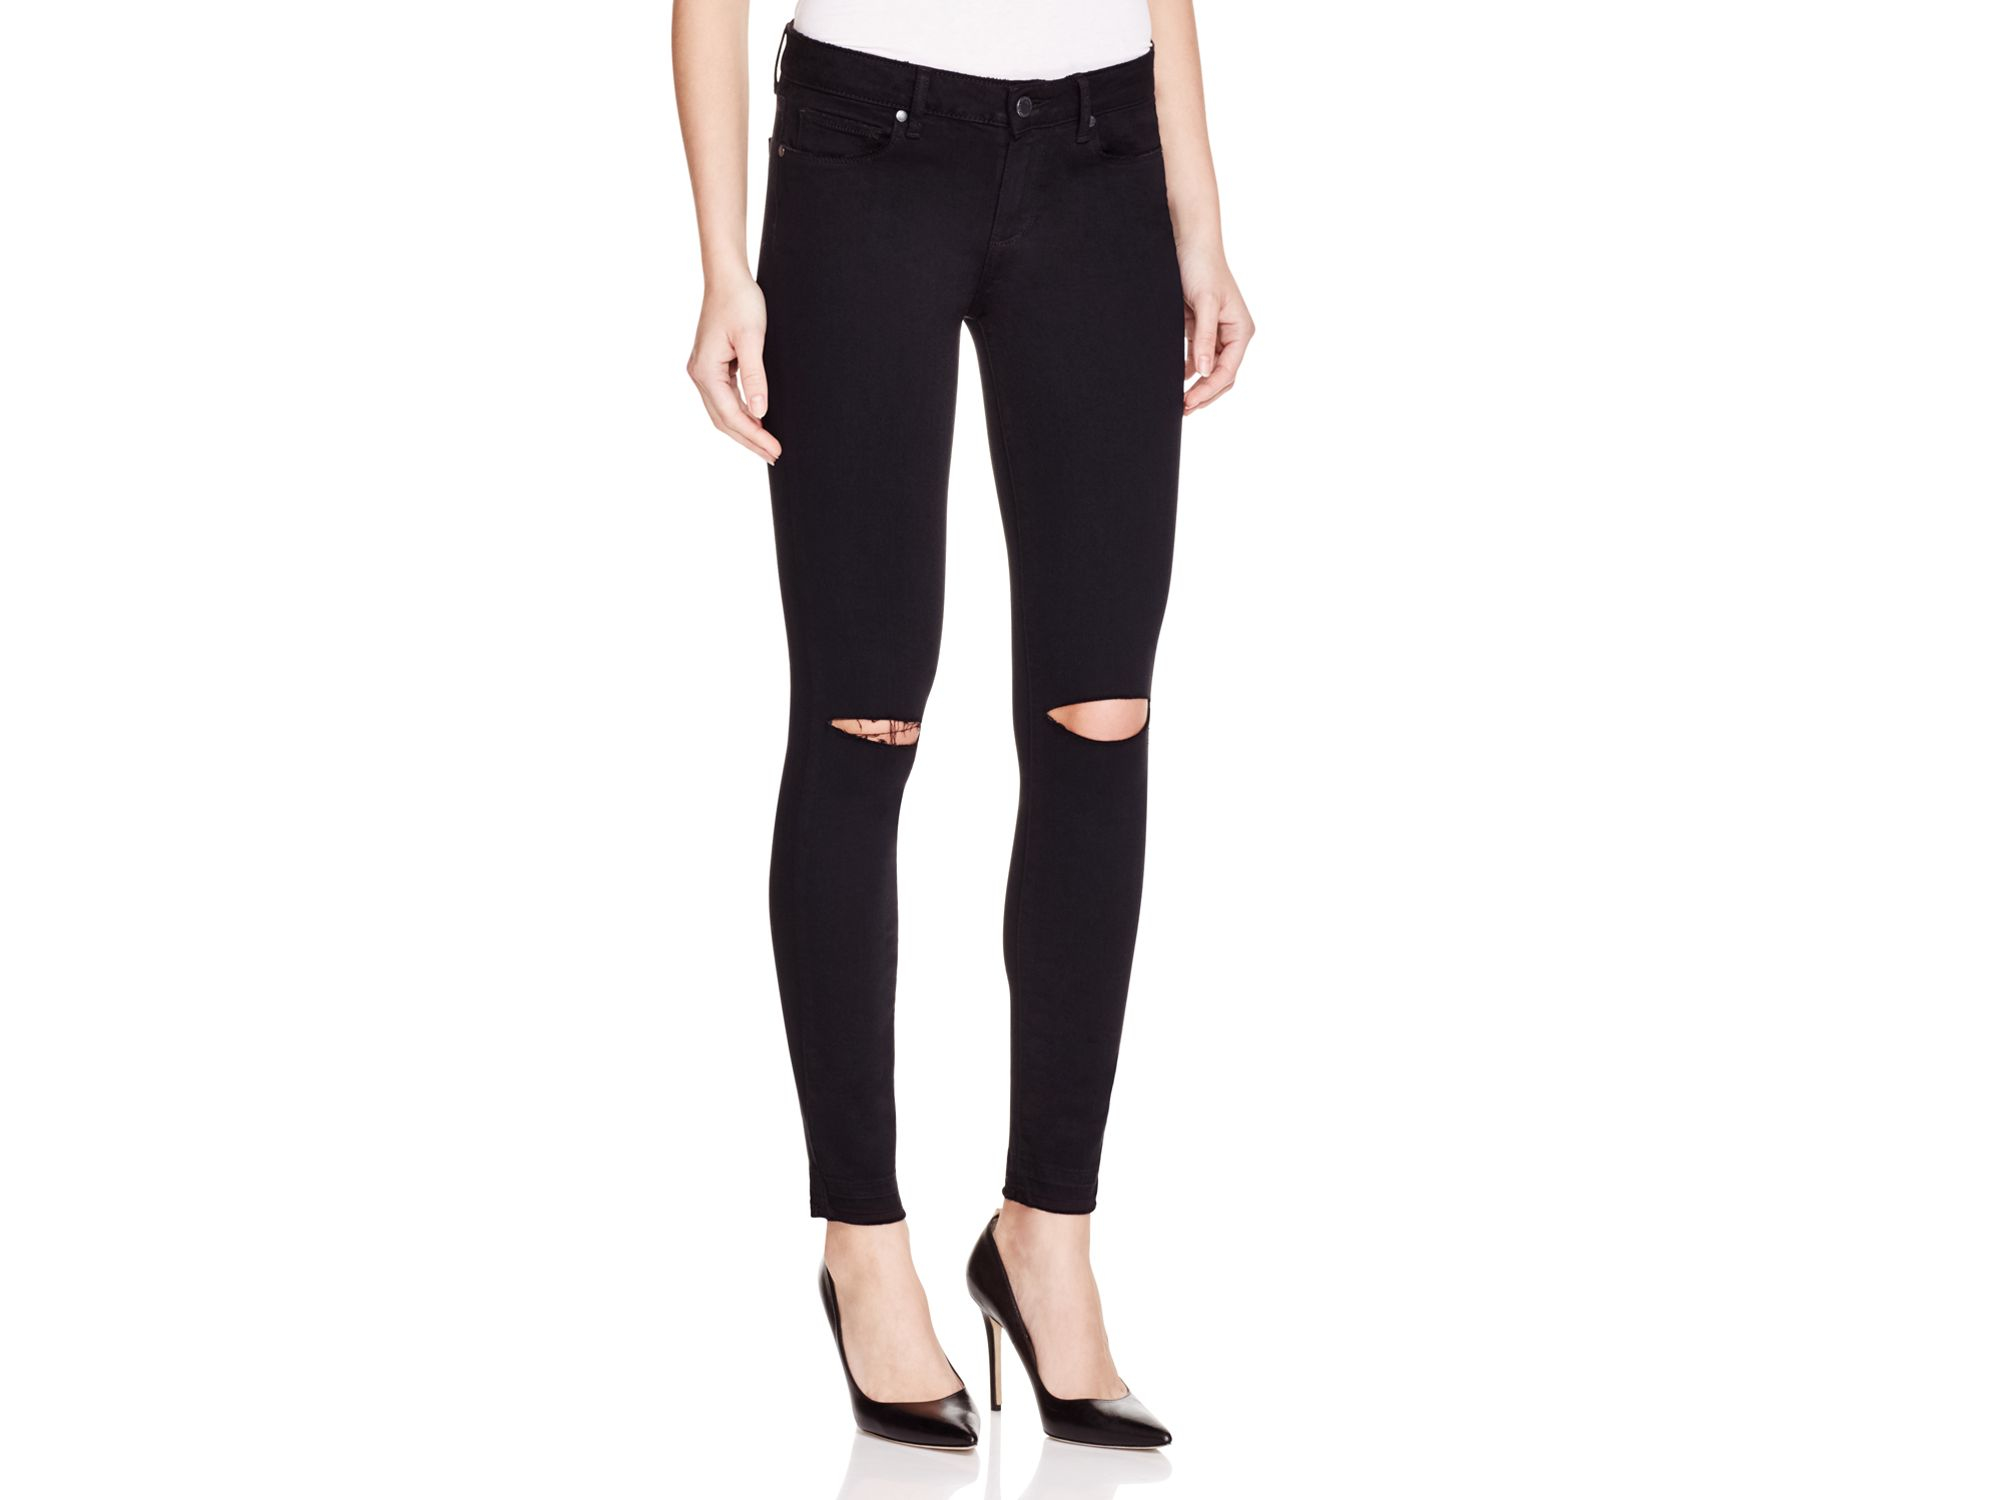 Paige Denim Black Skinny Jeans - Jeans Am